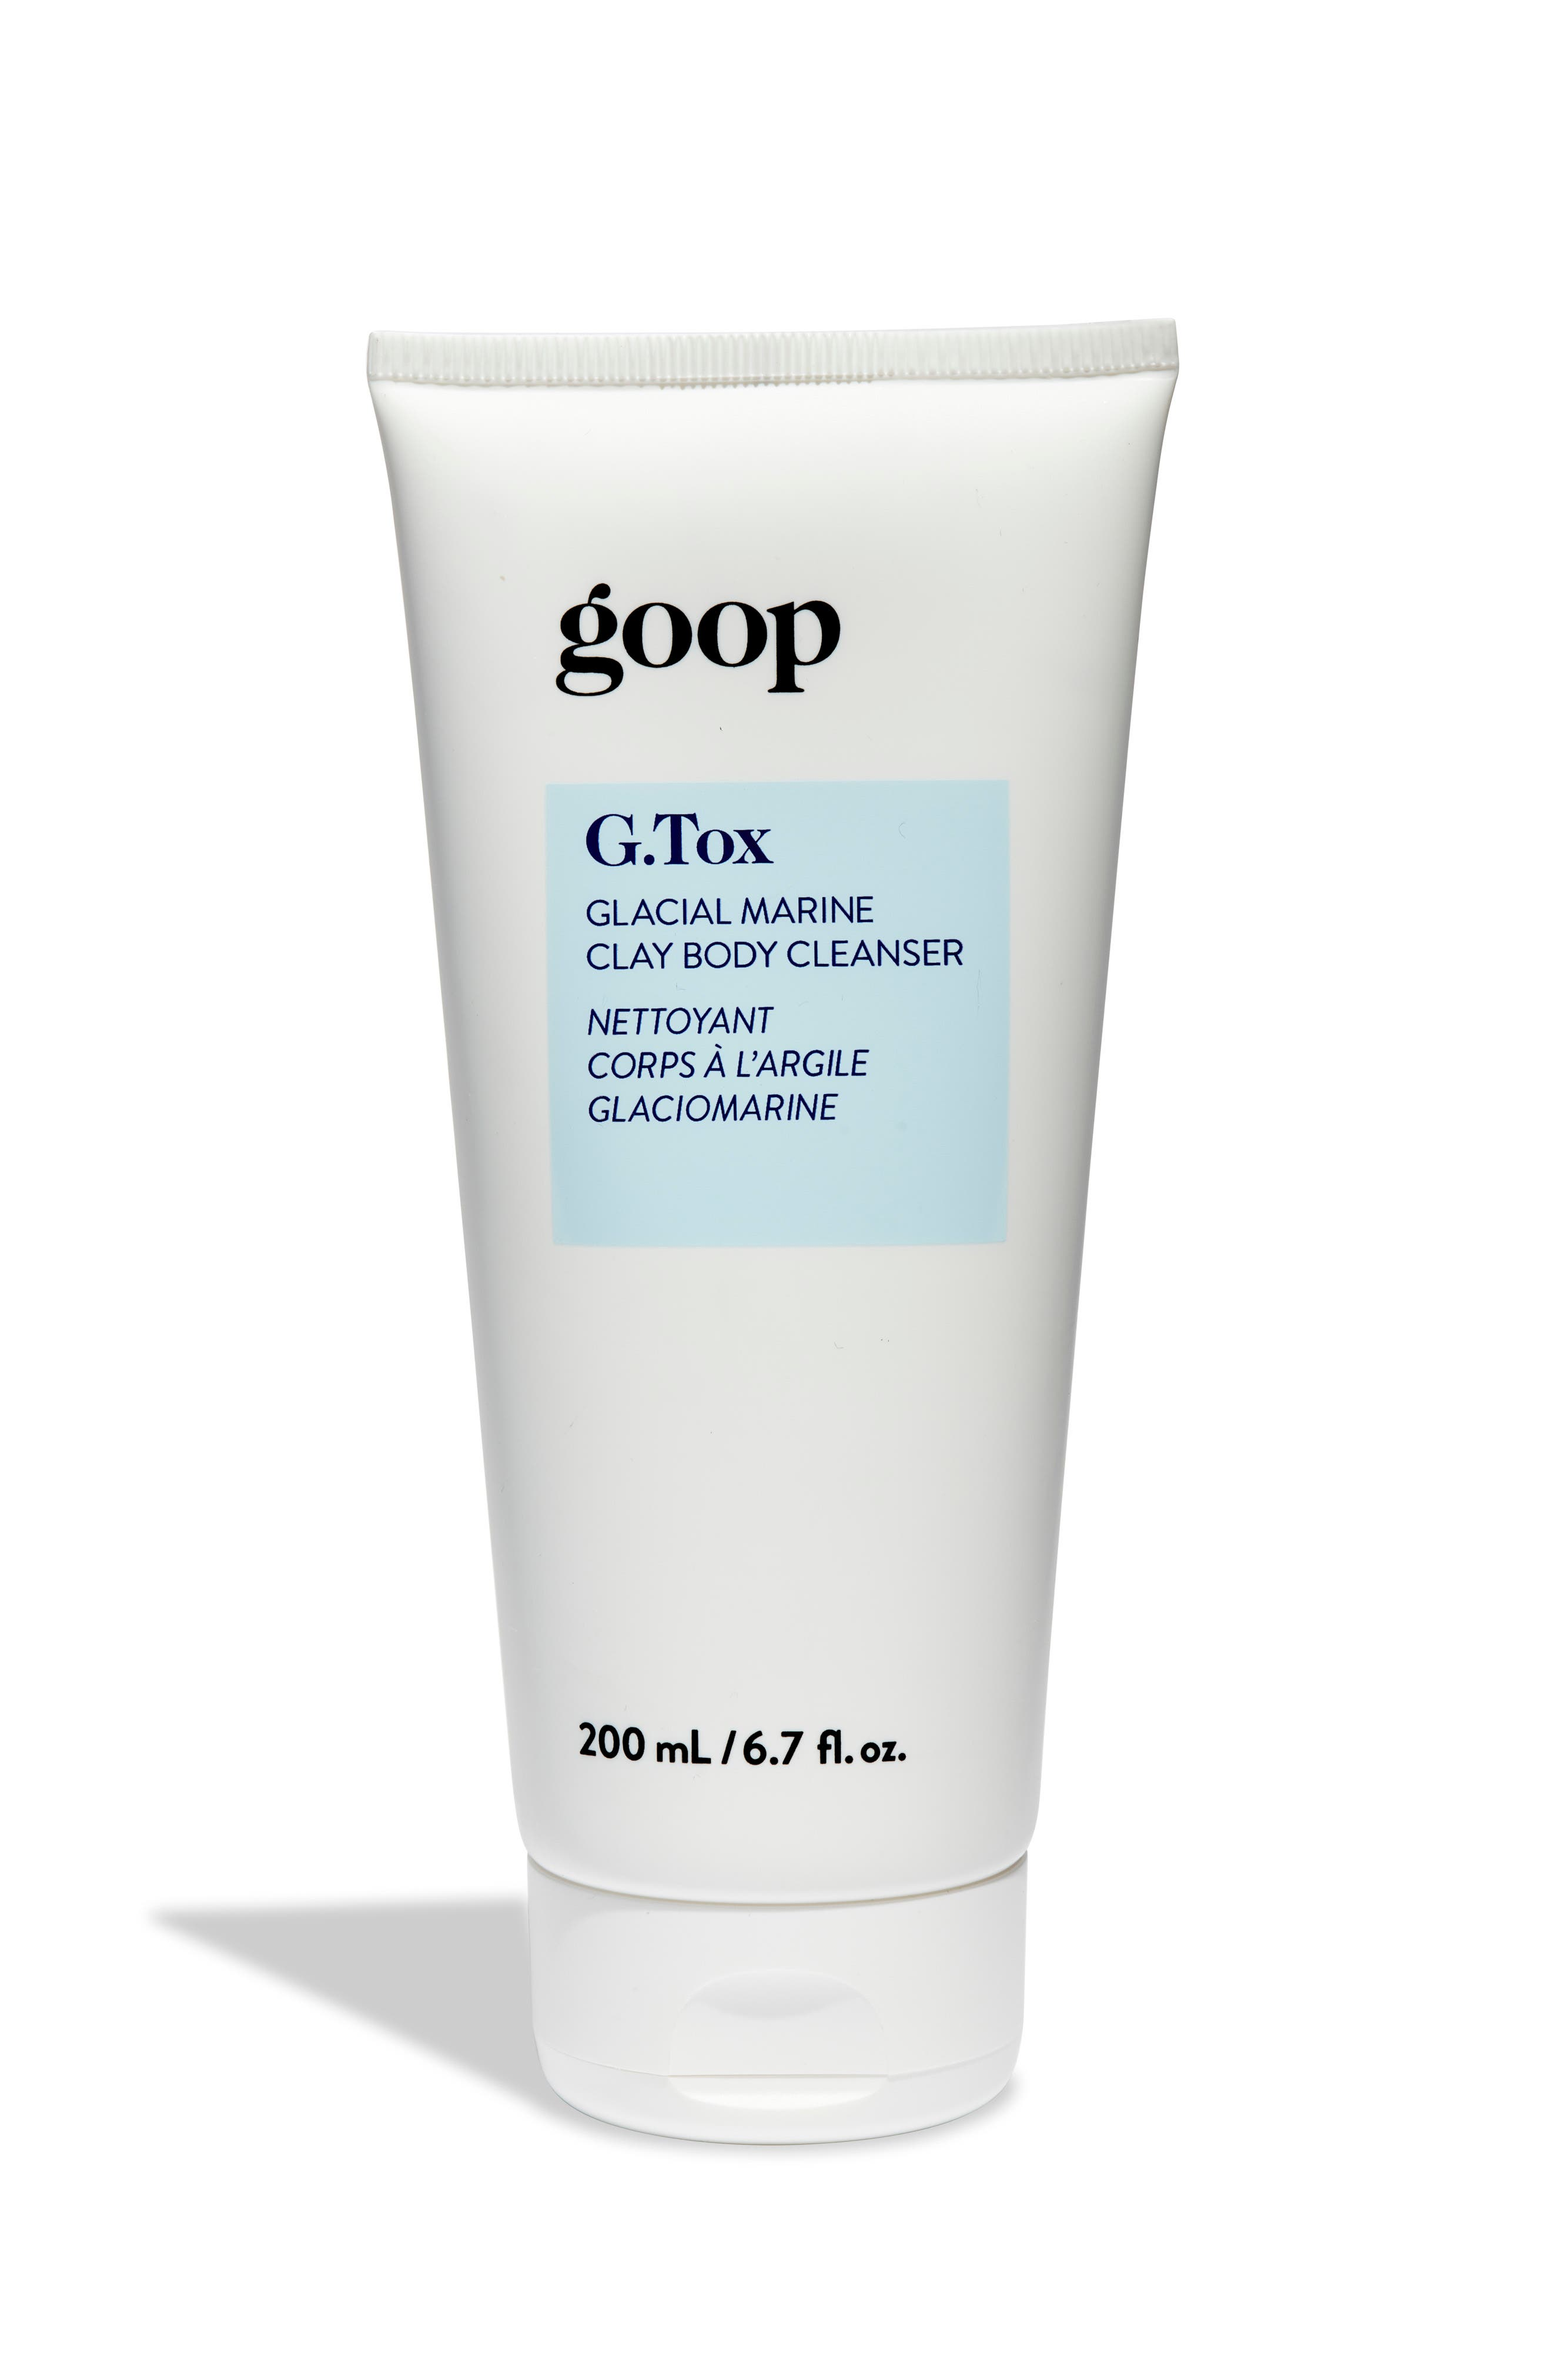 G.Tox Glacial Marine Clay Body Cleanser,                             Main thumbnail 1, color,                             960